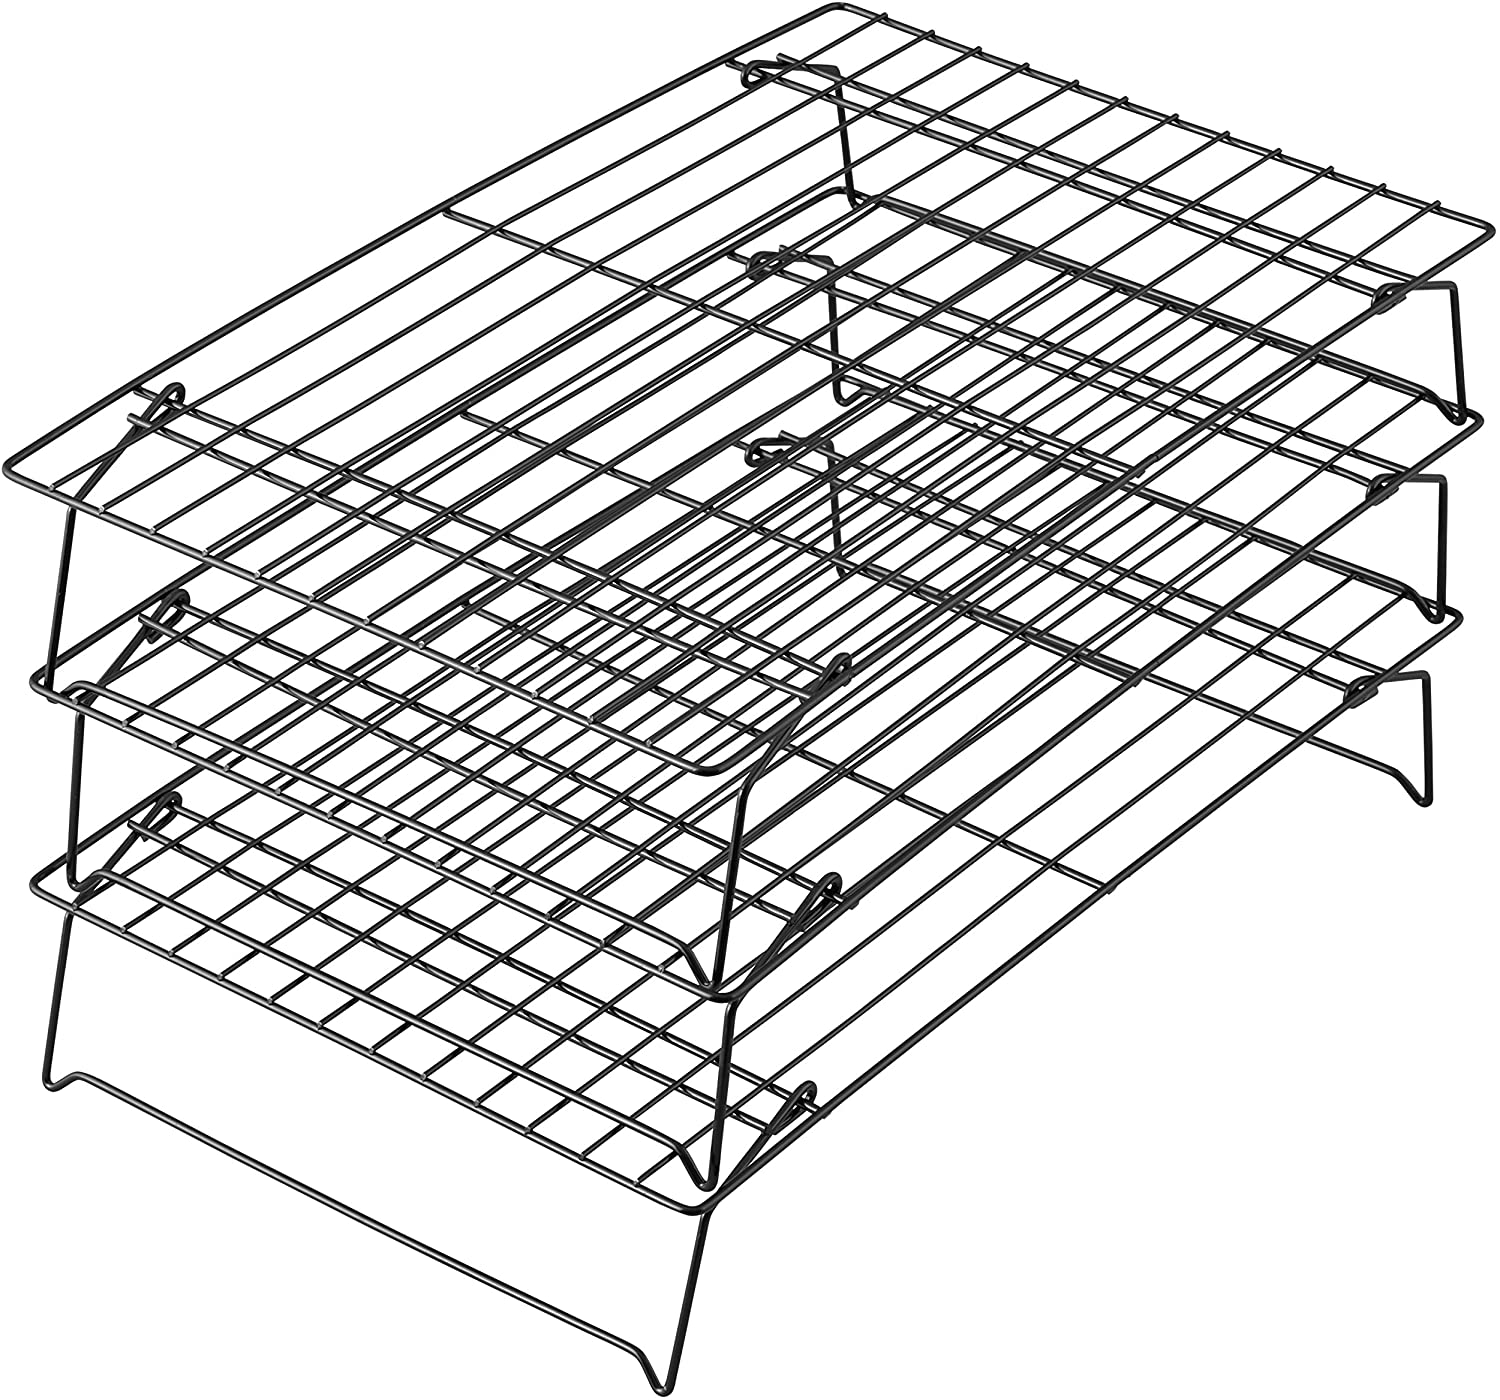 Wilton Excelle Elite 3-Tier Cooling Rack for Cookies, Cake and More